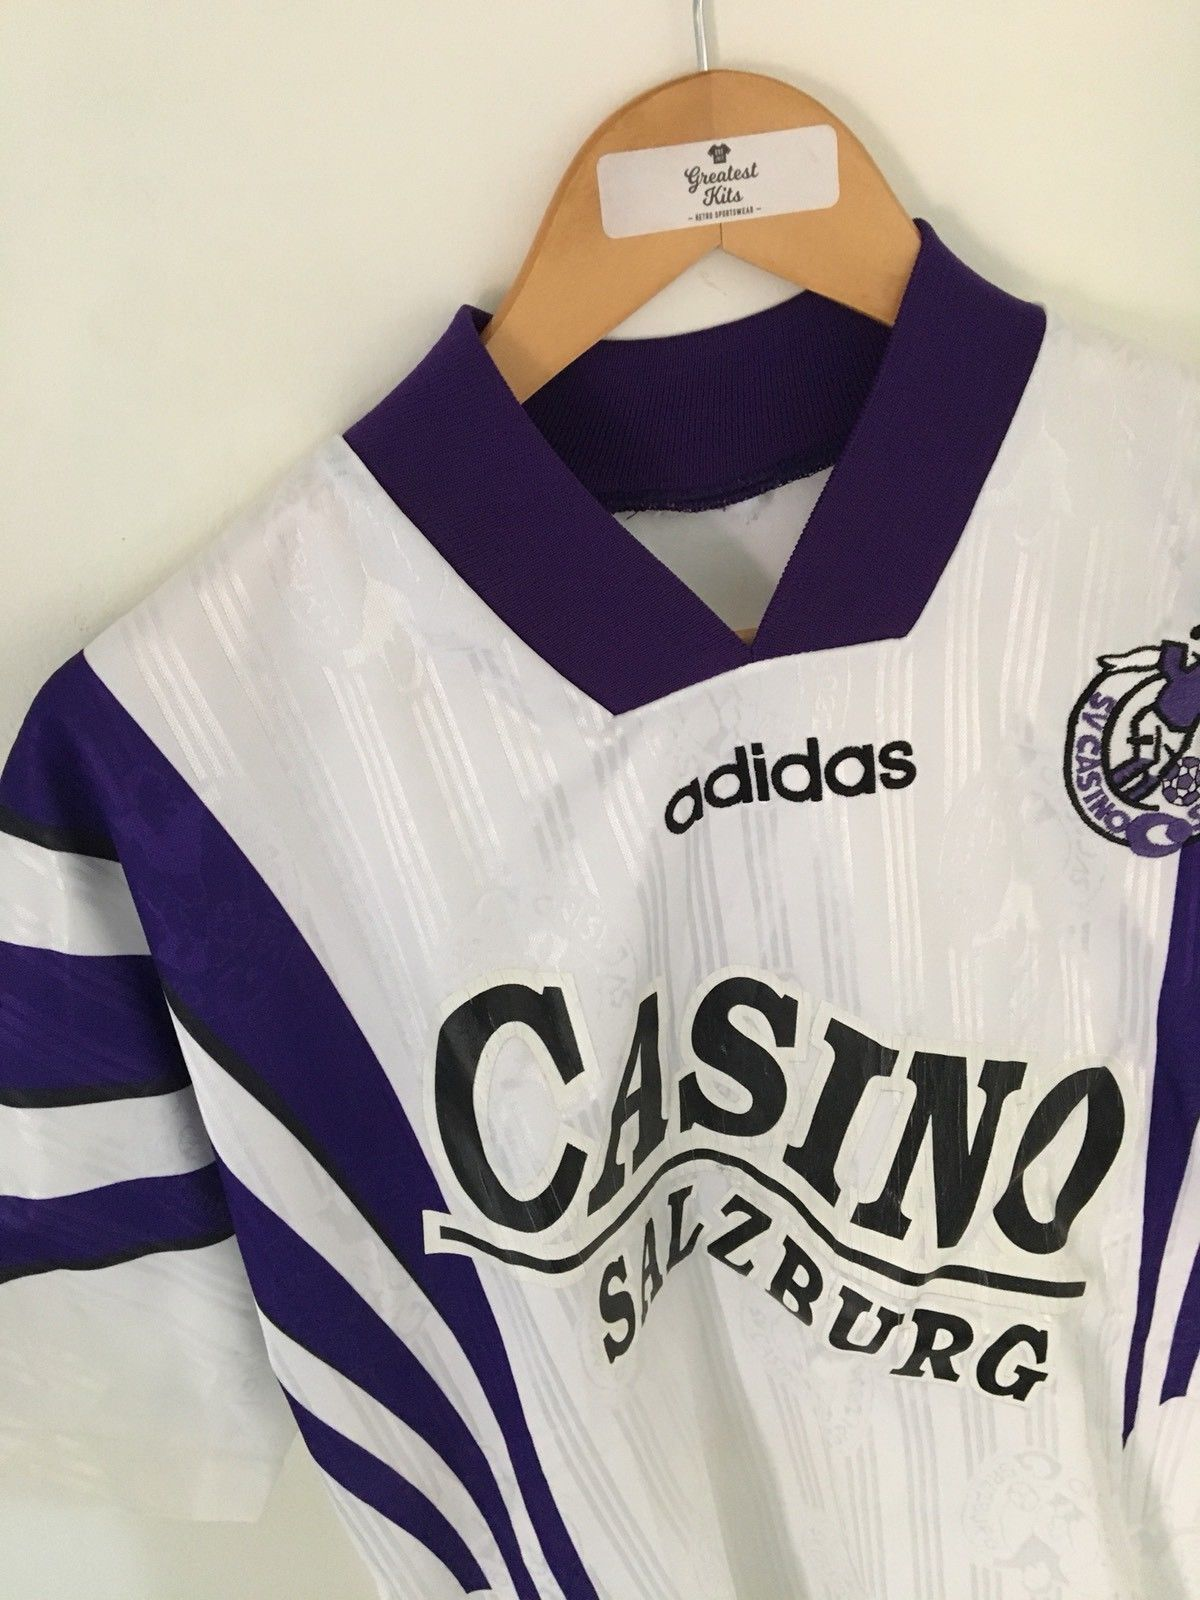 1996/97 Casino Salzburg Home Shirt (M) 8/10